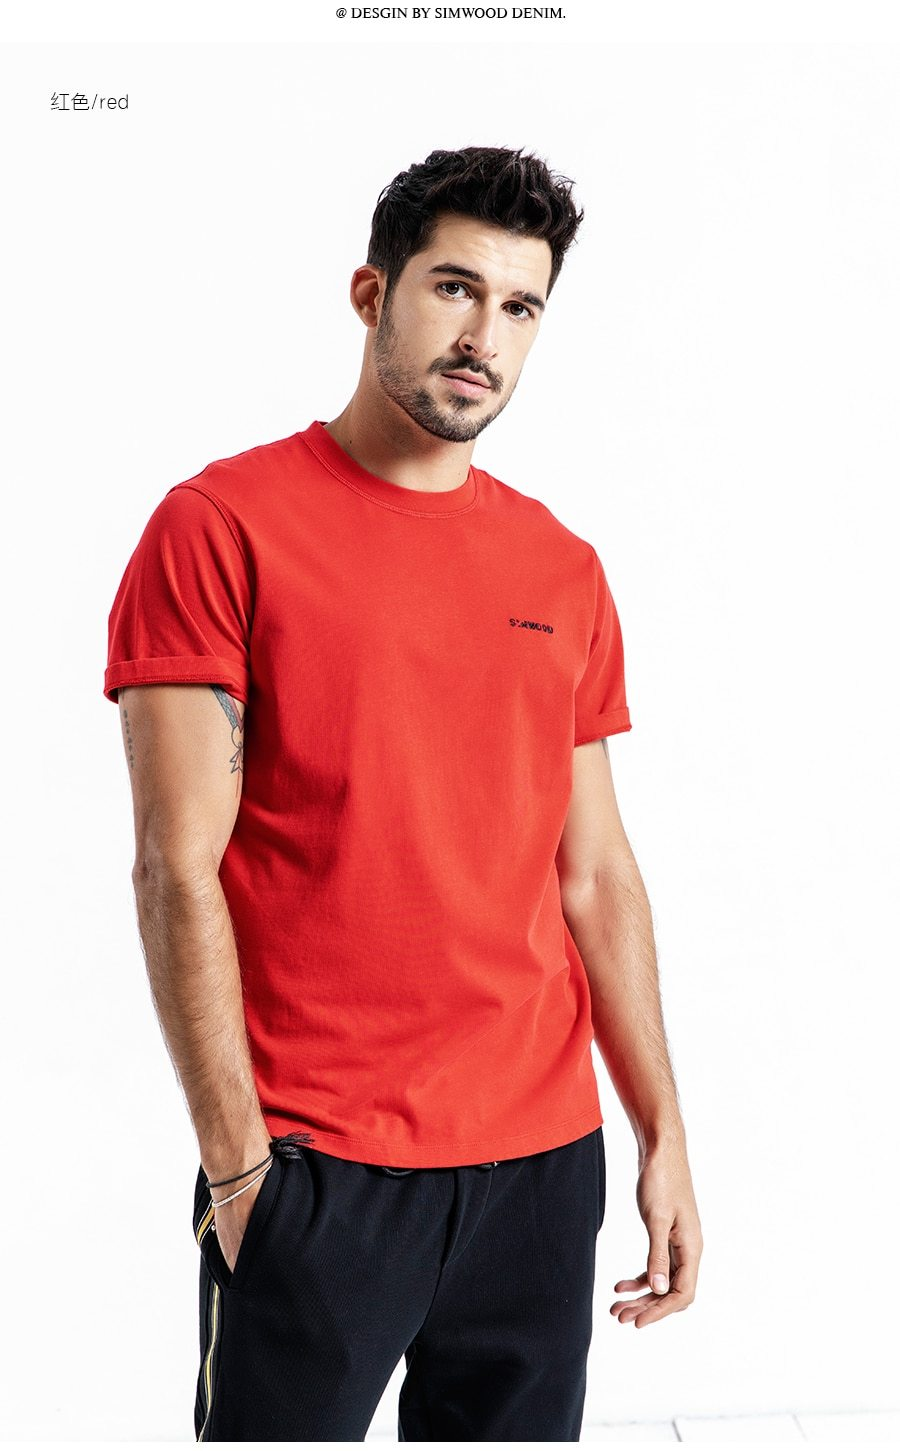 T-Shirt Men 100% Cotton Embroidered Casual t shirt Basics O-neck High